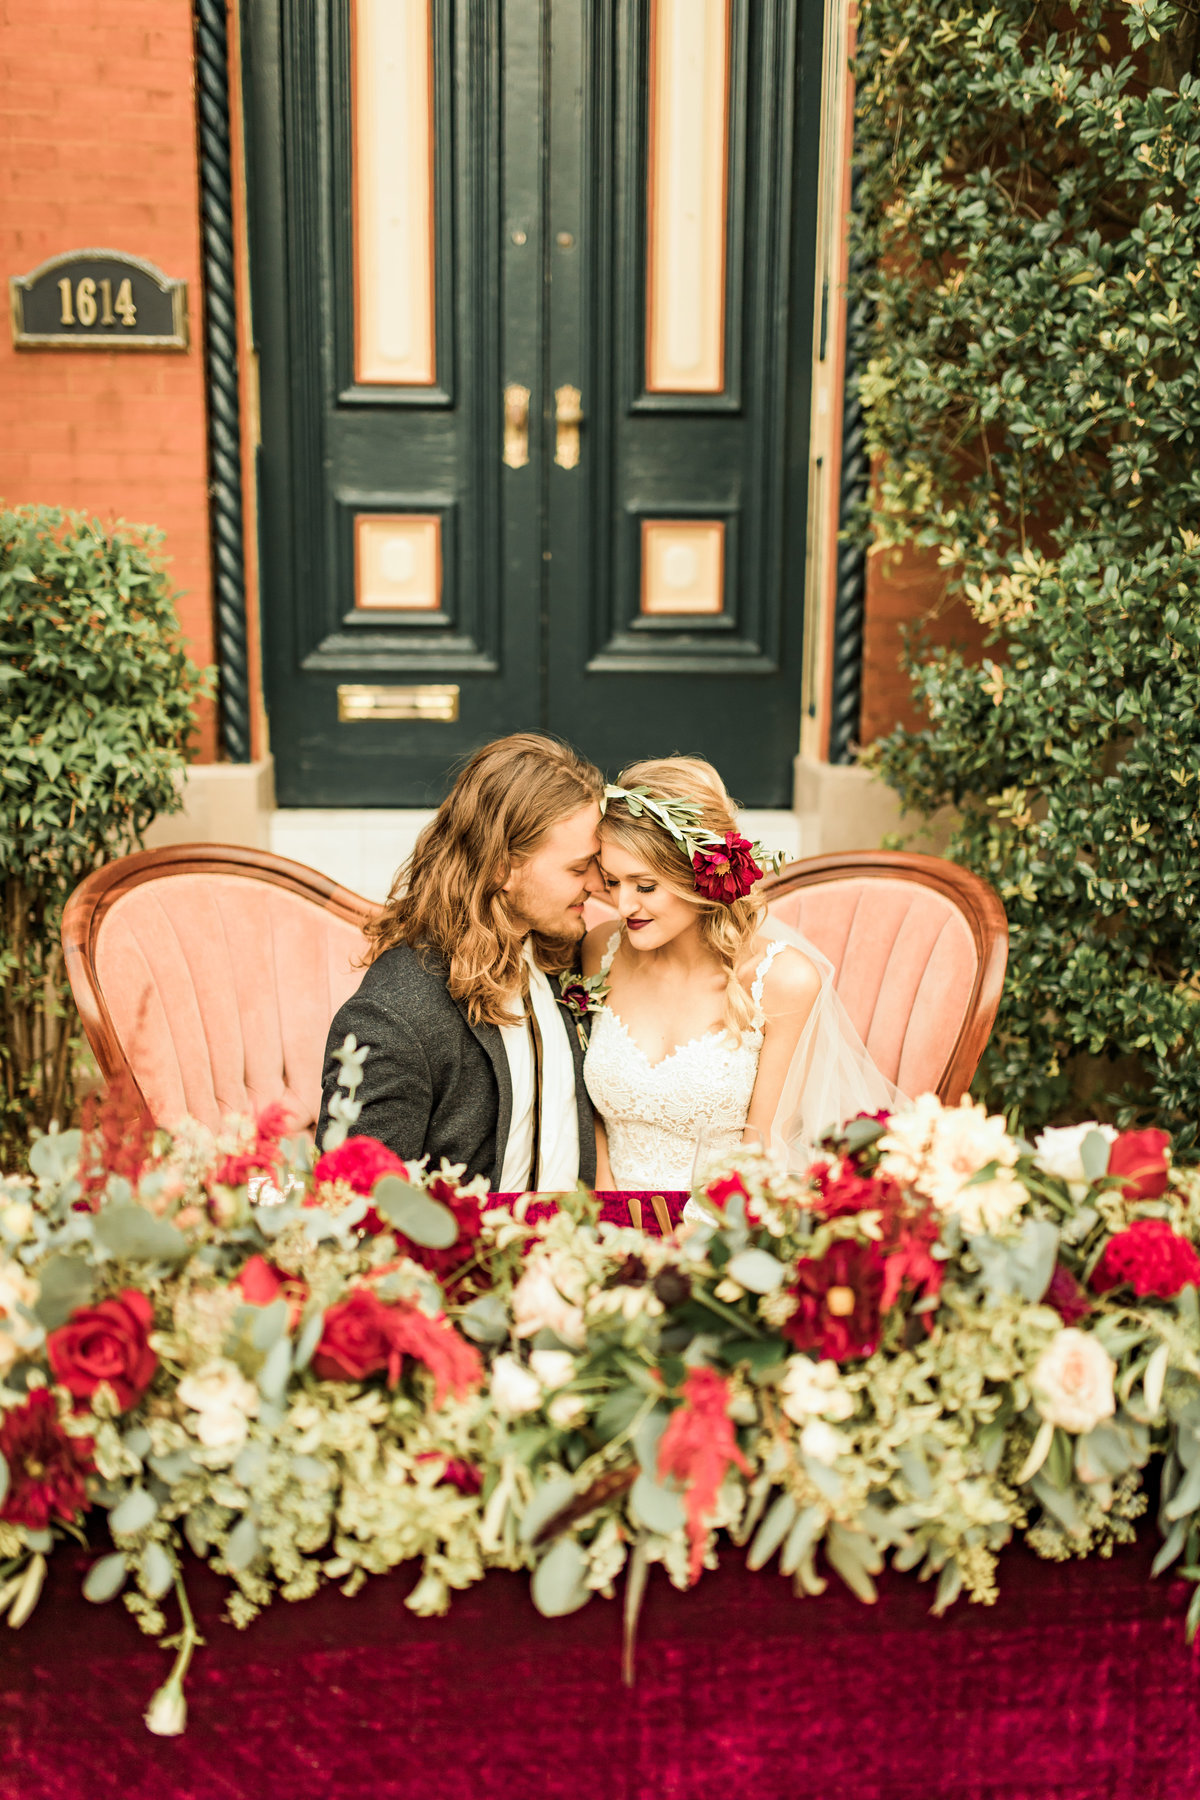 Fall Boho-Inspired Styled Shoot Lafayette Square Historic District  St. Louis, Missouri  Allison Slater Photography  Wedding Photographer234